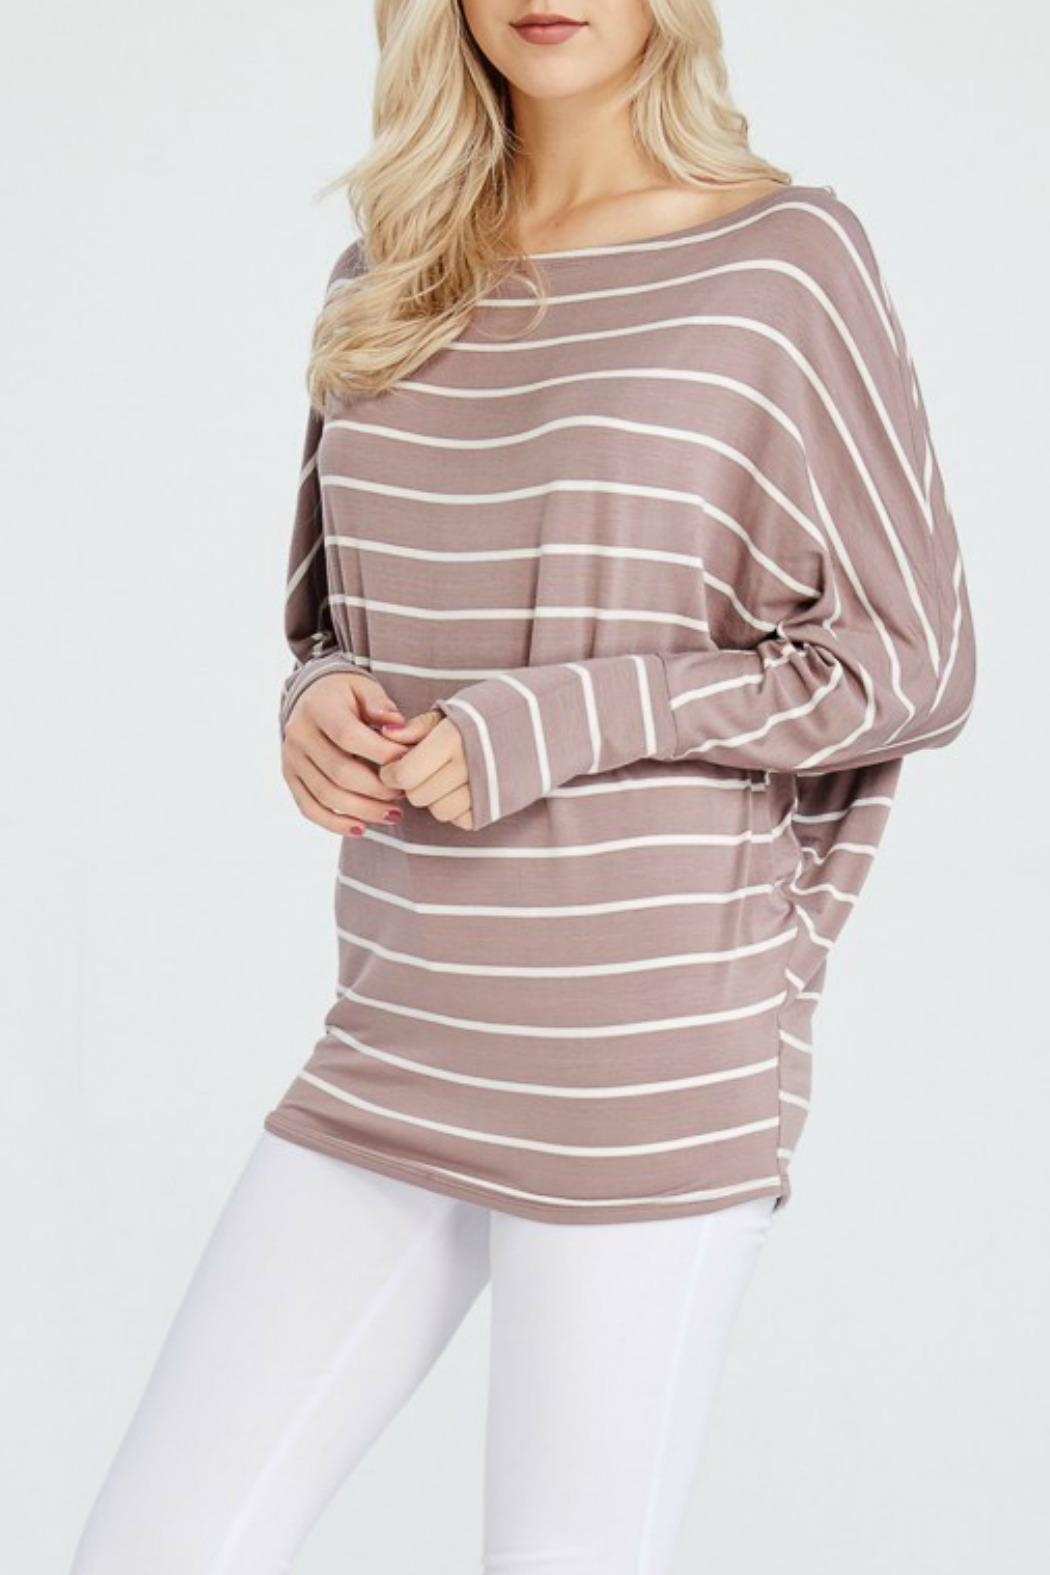 White Birch Claire Dolman Top - Front Full Image